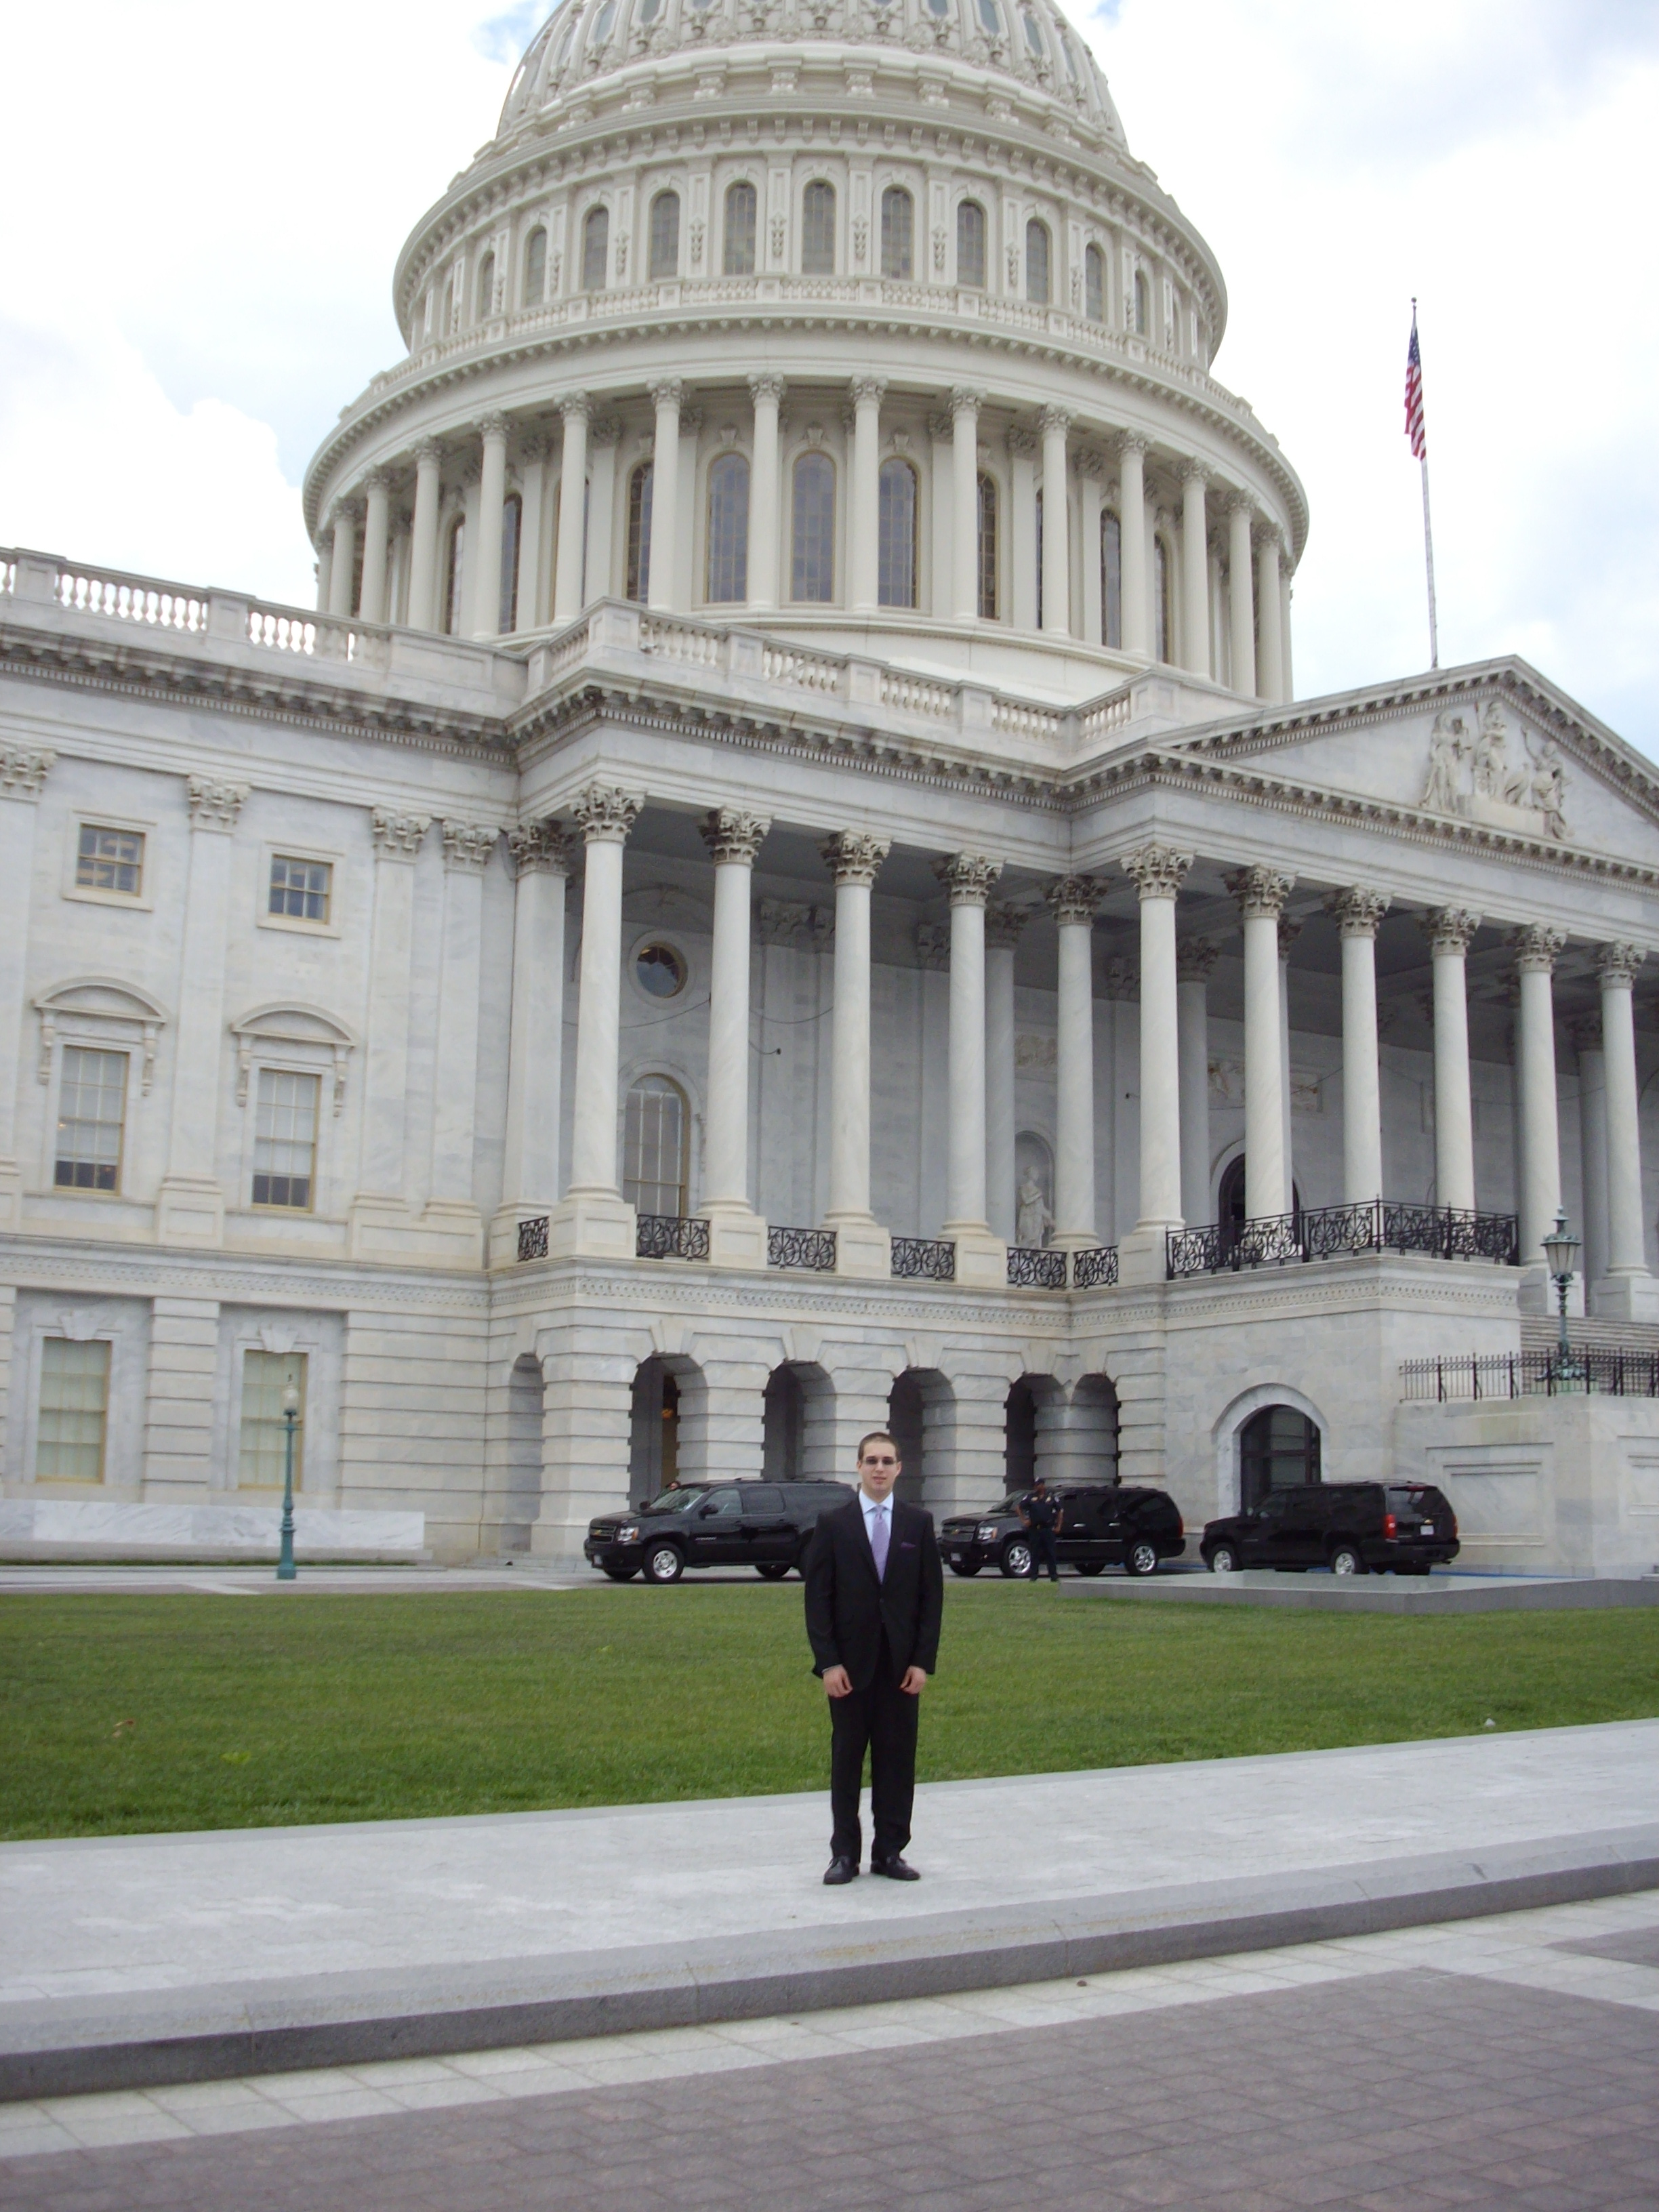 Outside the Capitol Building in Washington, D.C., May 2011